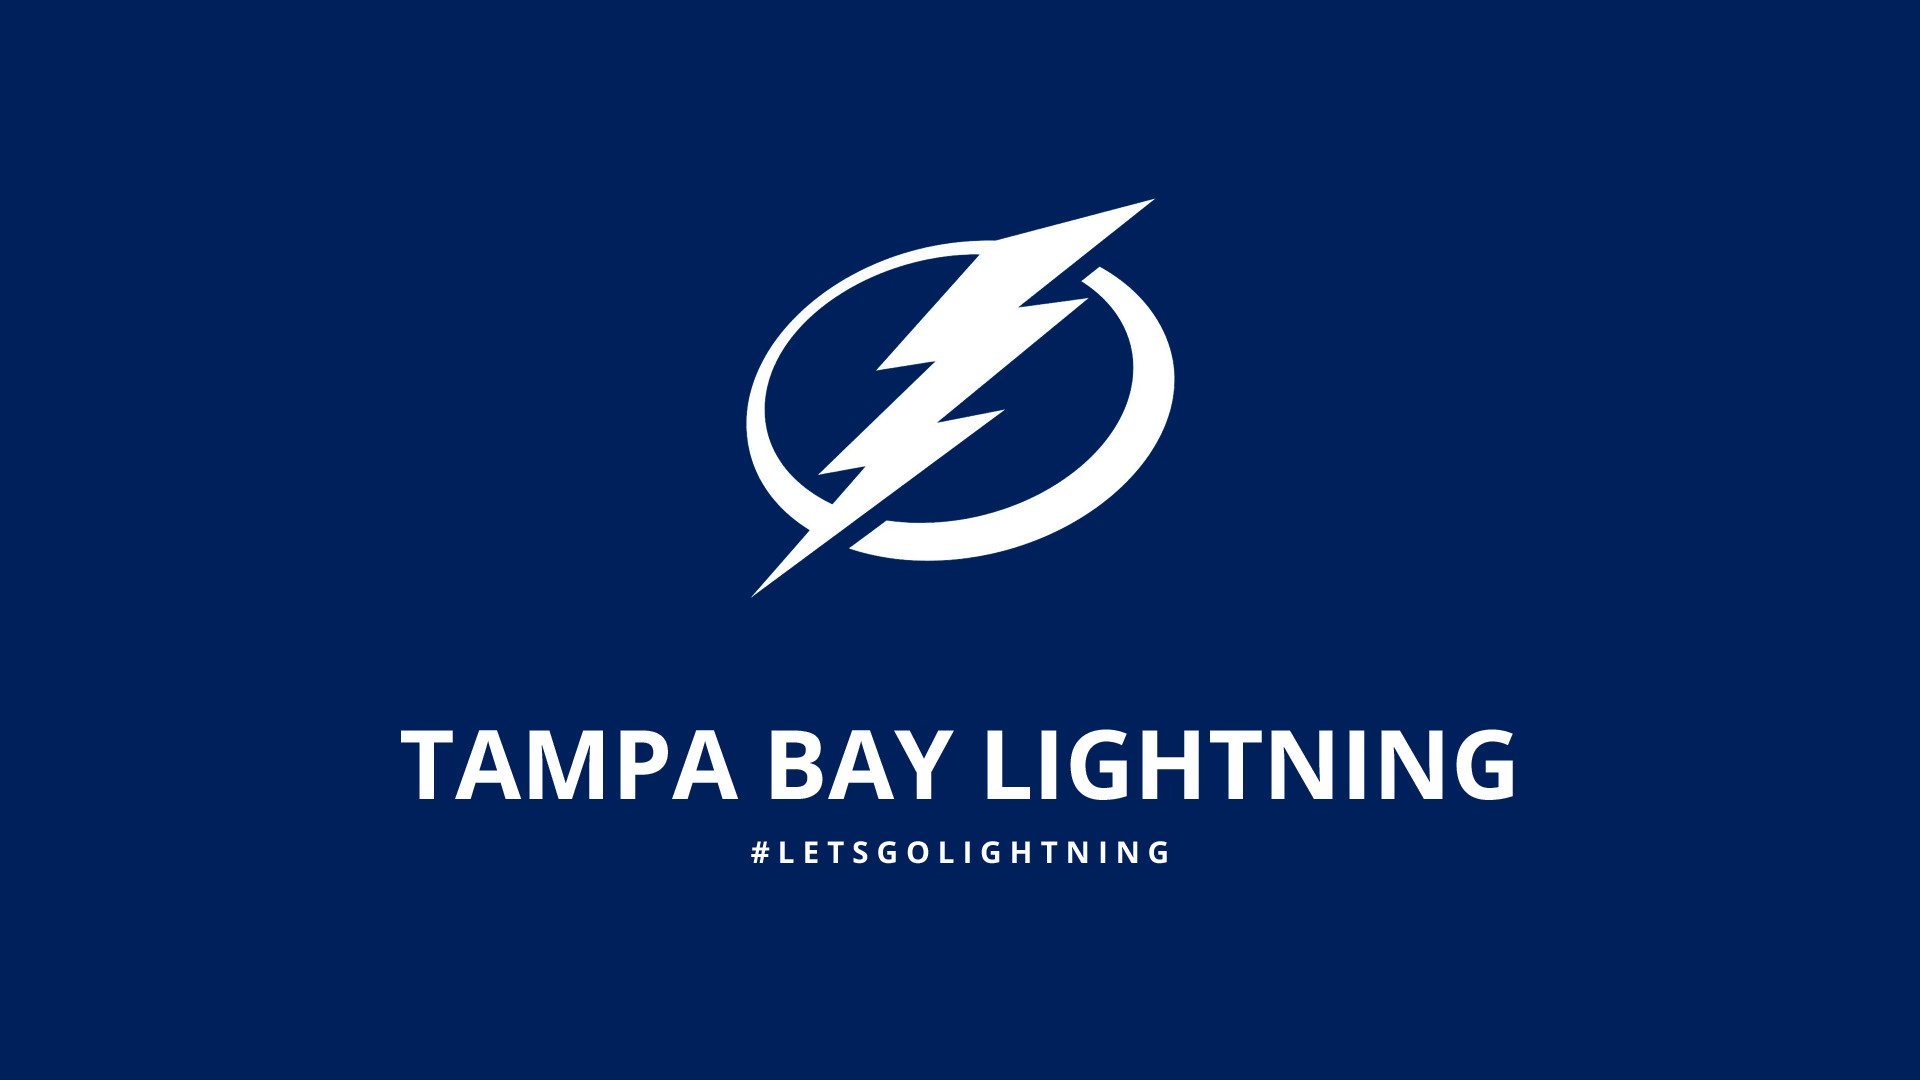 High Quality 1920x1080 Lightning Wallpapers Wallpaper | HD Wallpapers | Pinterest |  Lightning And Tampa Bay Lightning